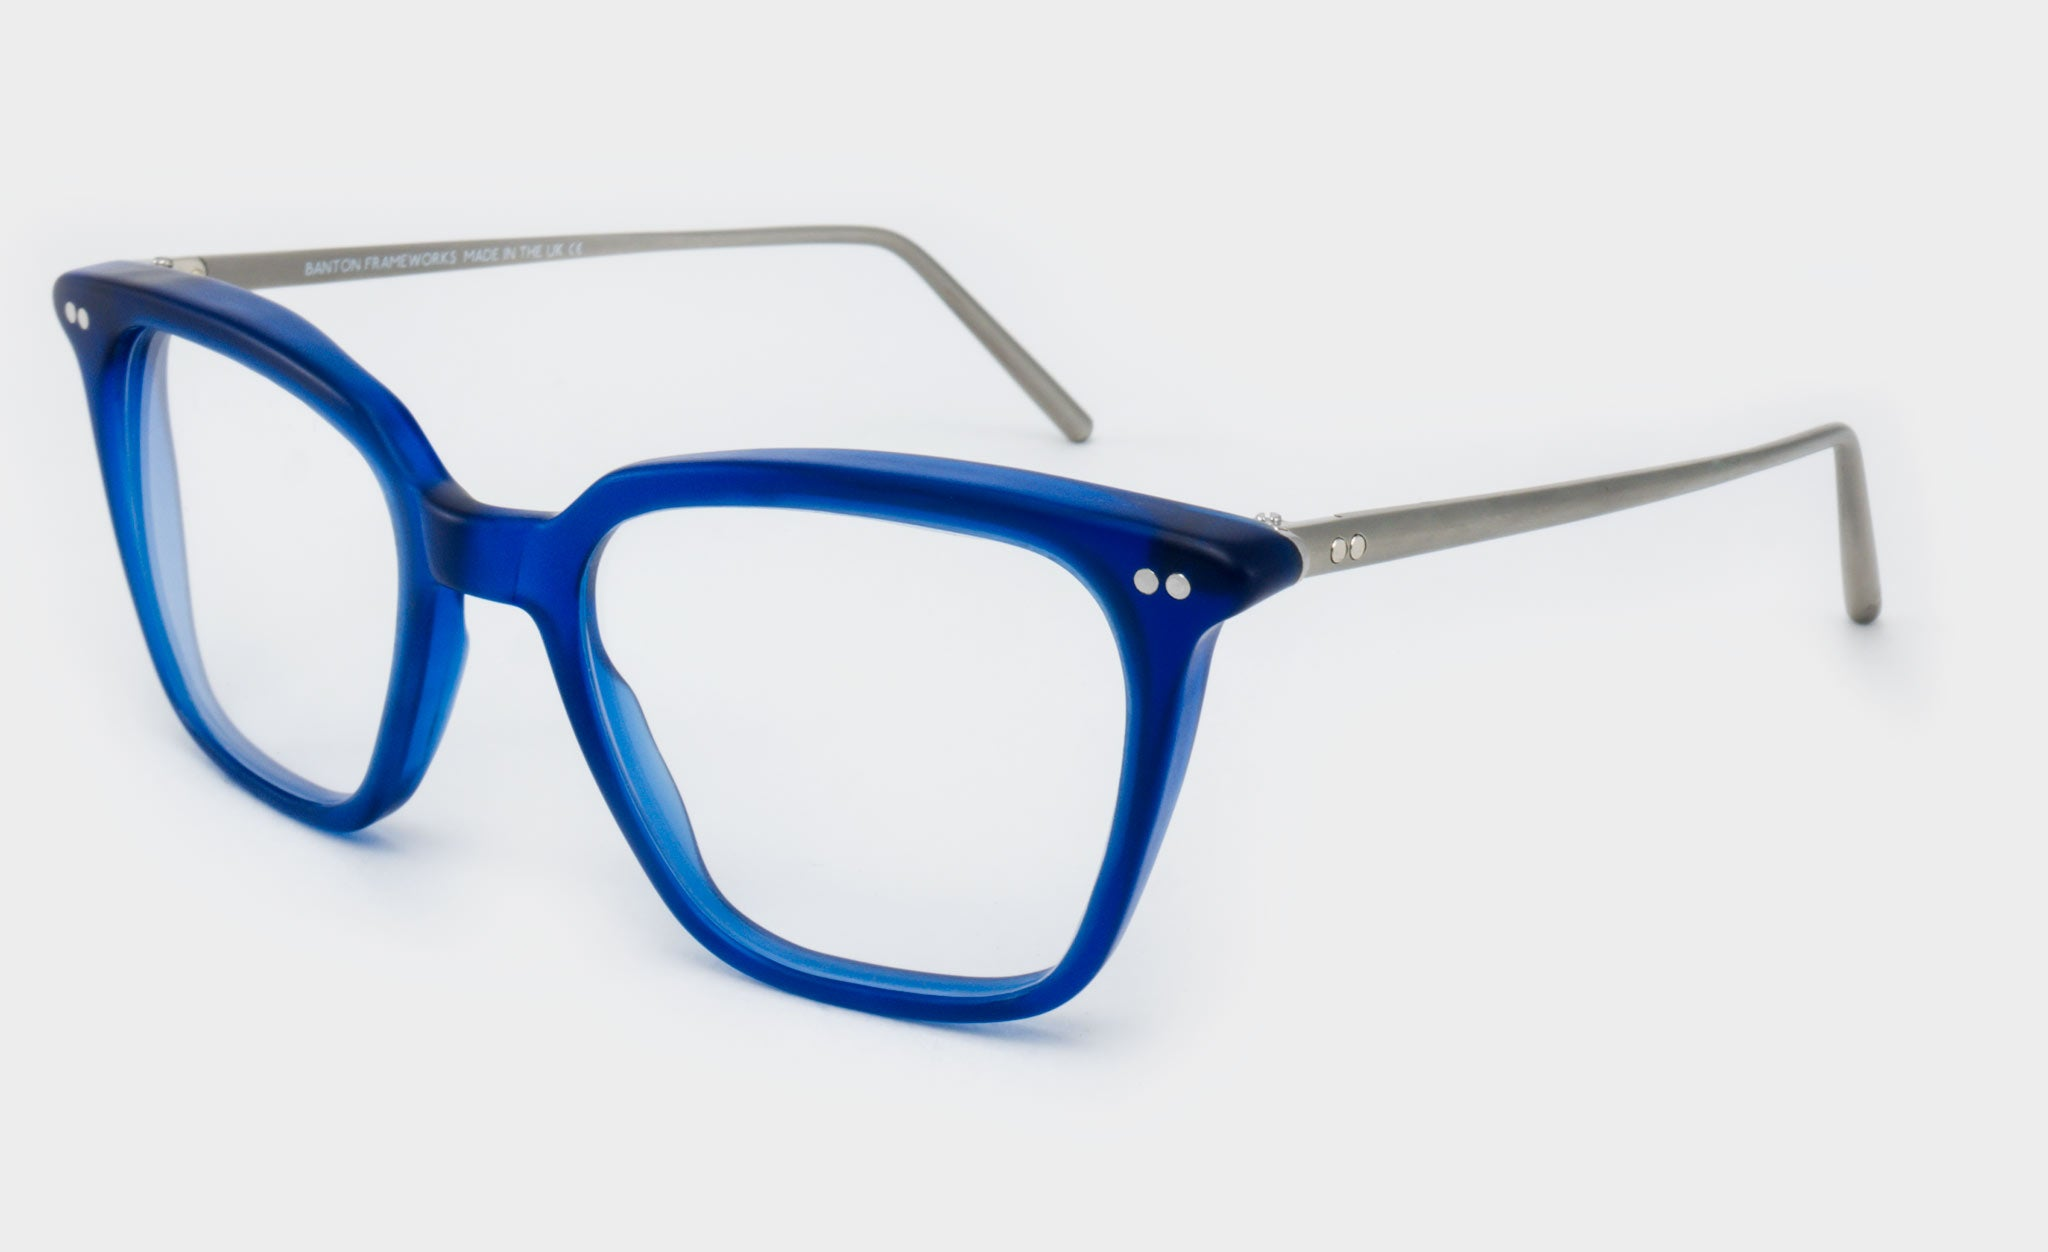 Mens-Blue-Glasses-Frame-side-View